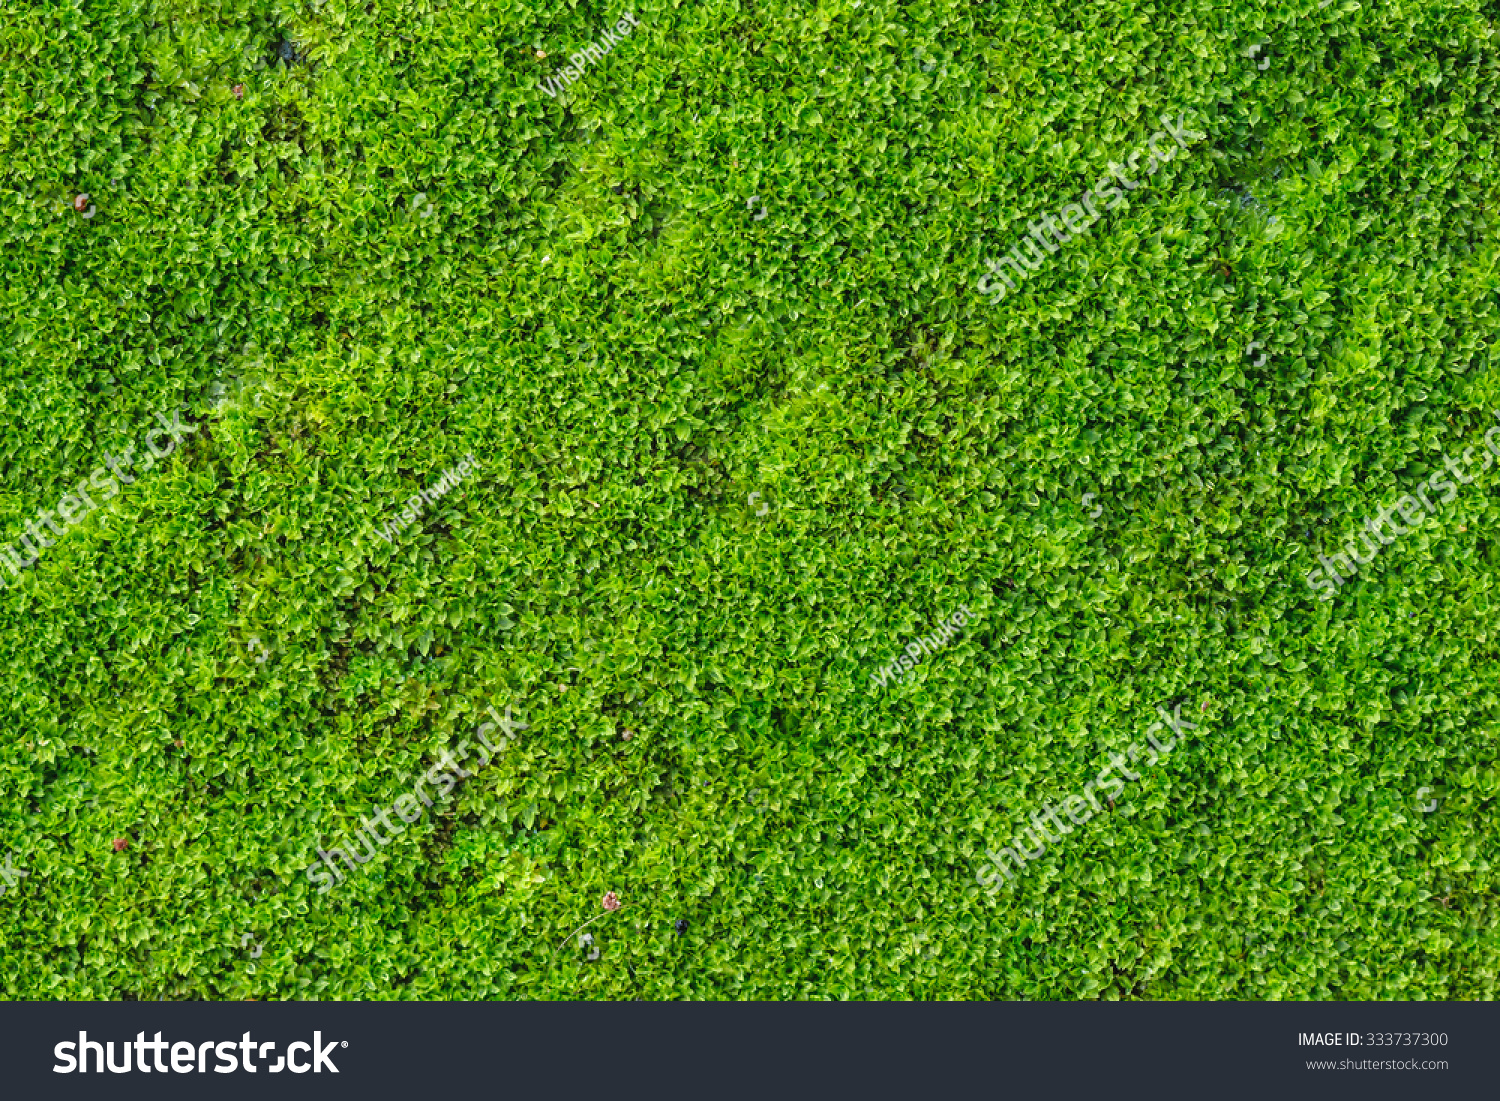 how to get rid of green moss on concrete